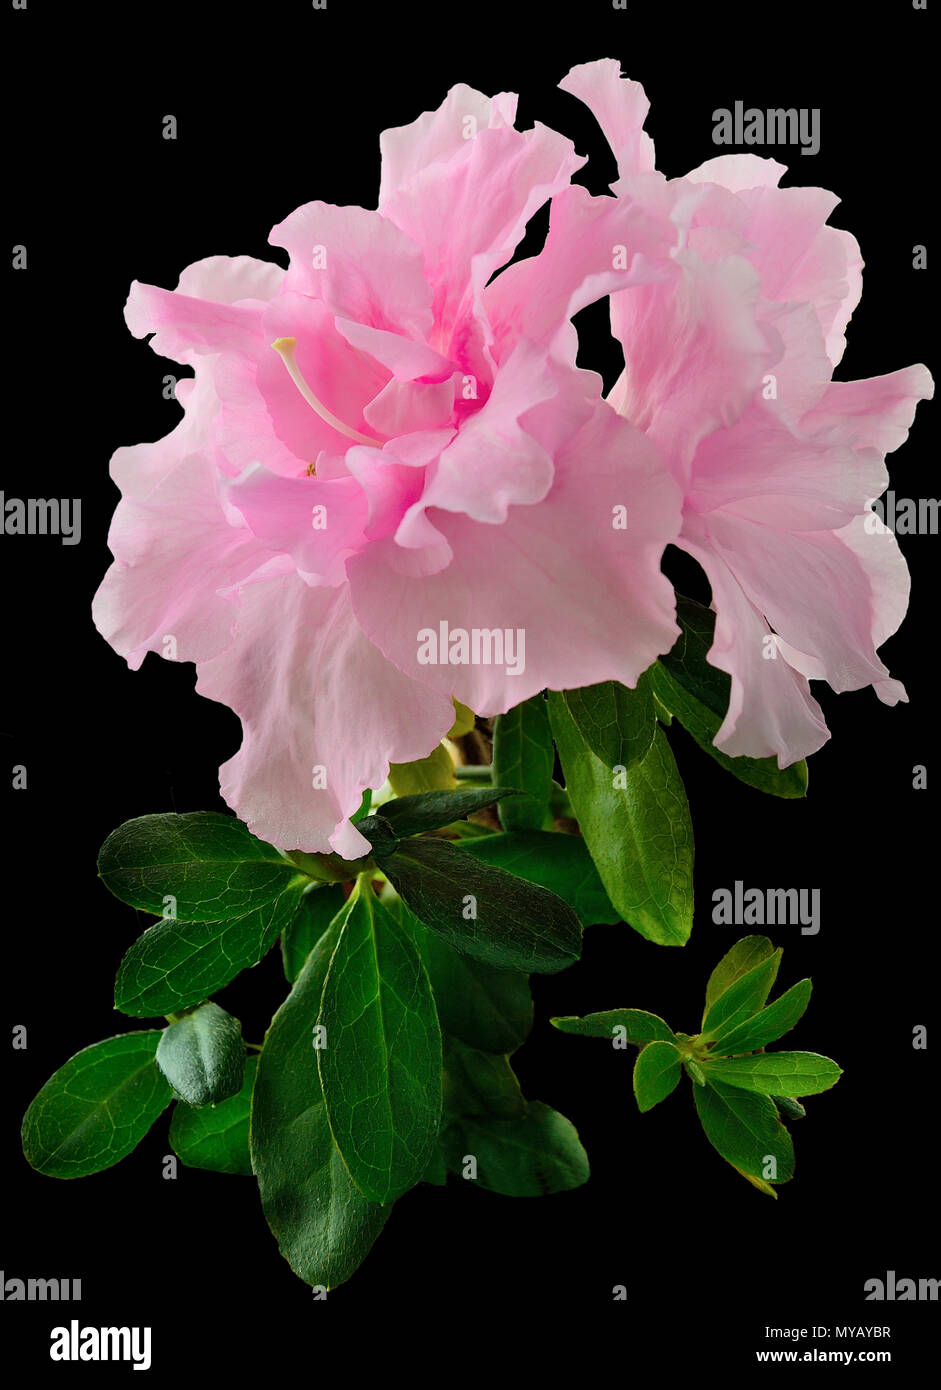 Delicate Light Pink Azalea Flowers Rhododendron With Leaves Close